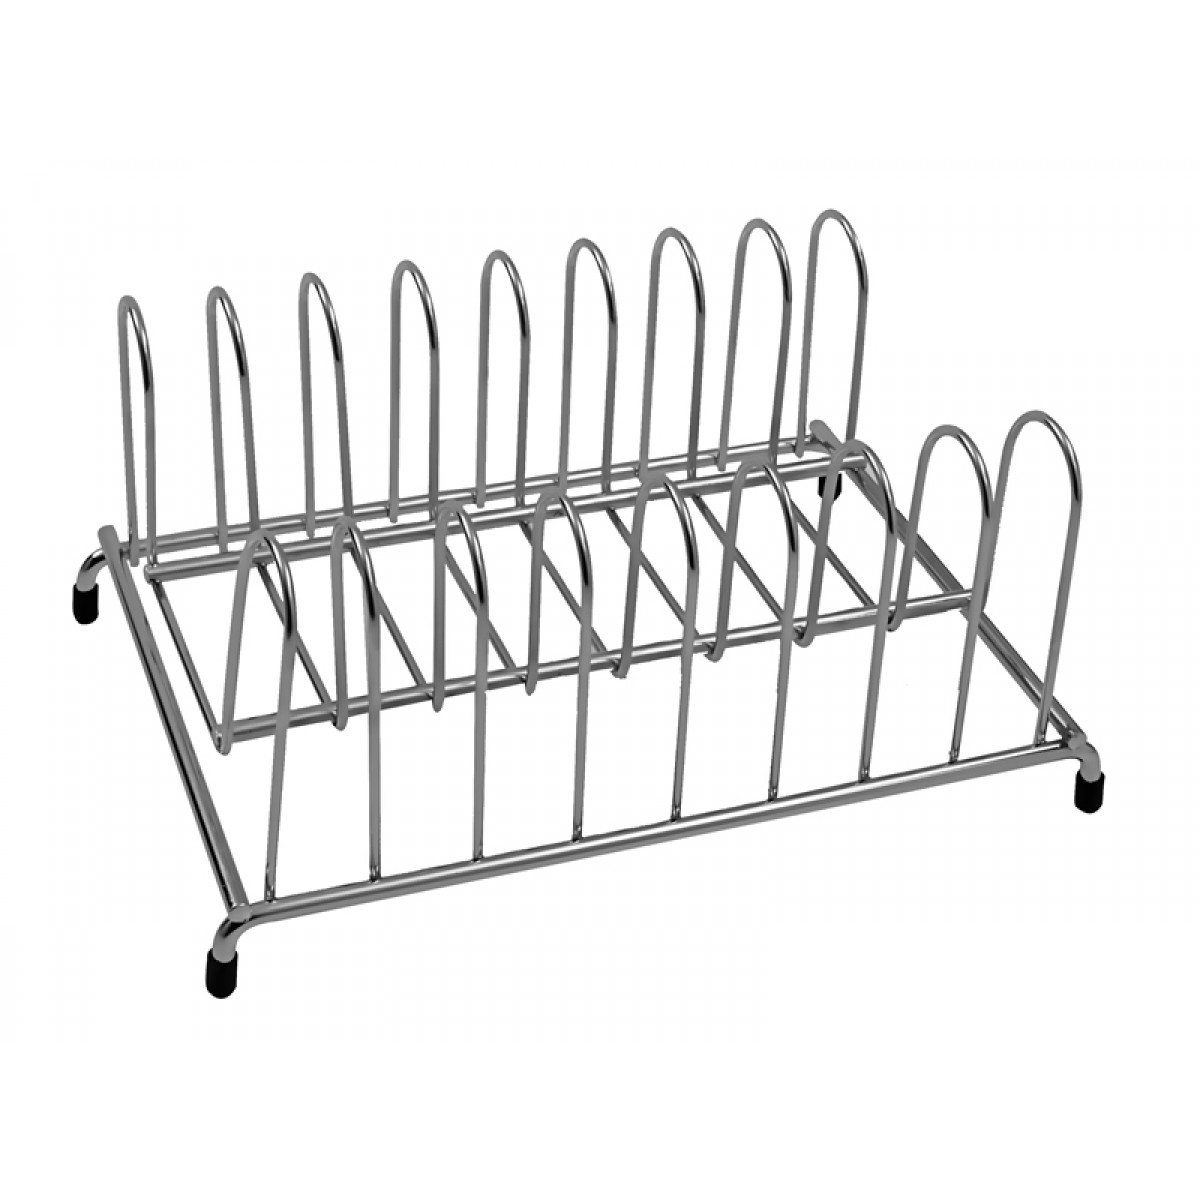 Klaxon Stainless Steel Plate Rack (Chrome Finish)